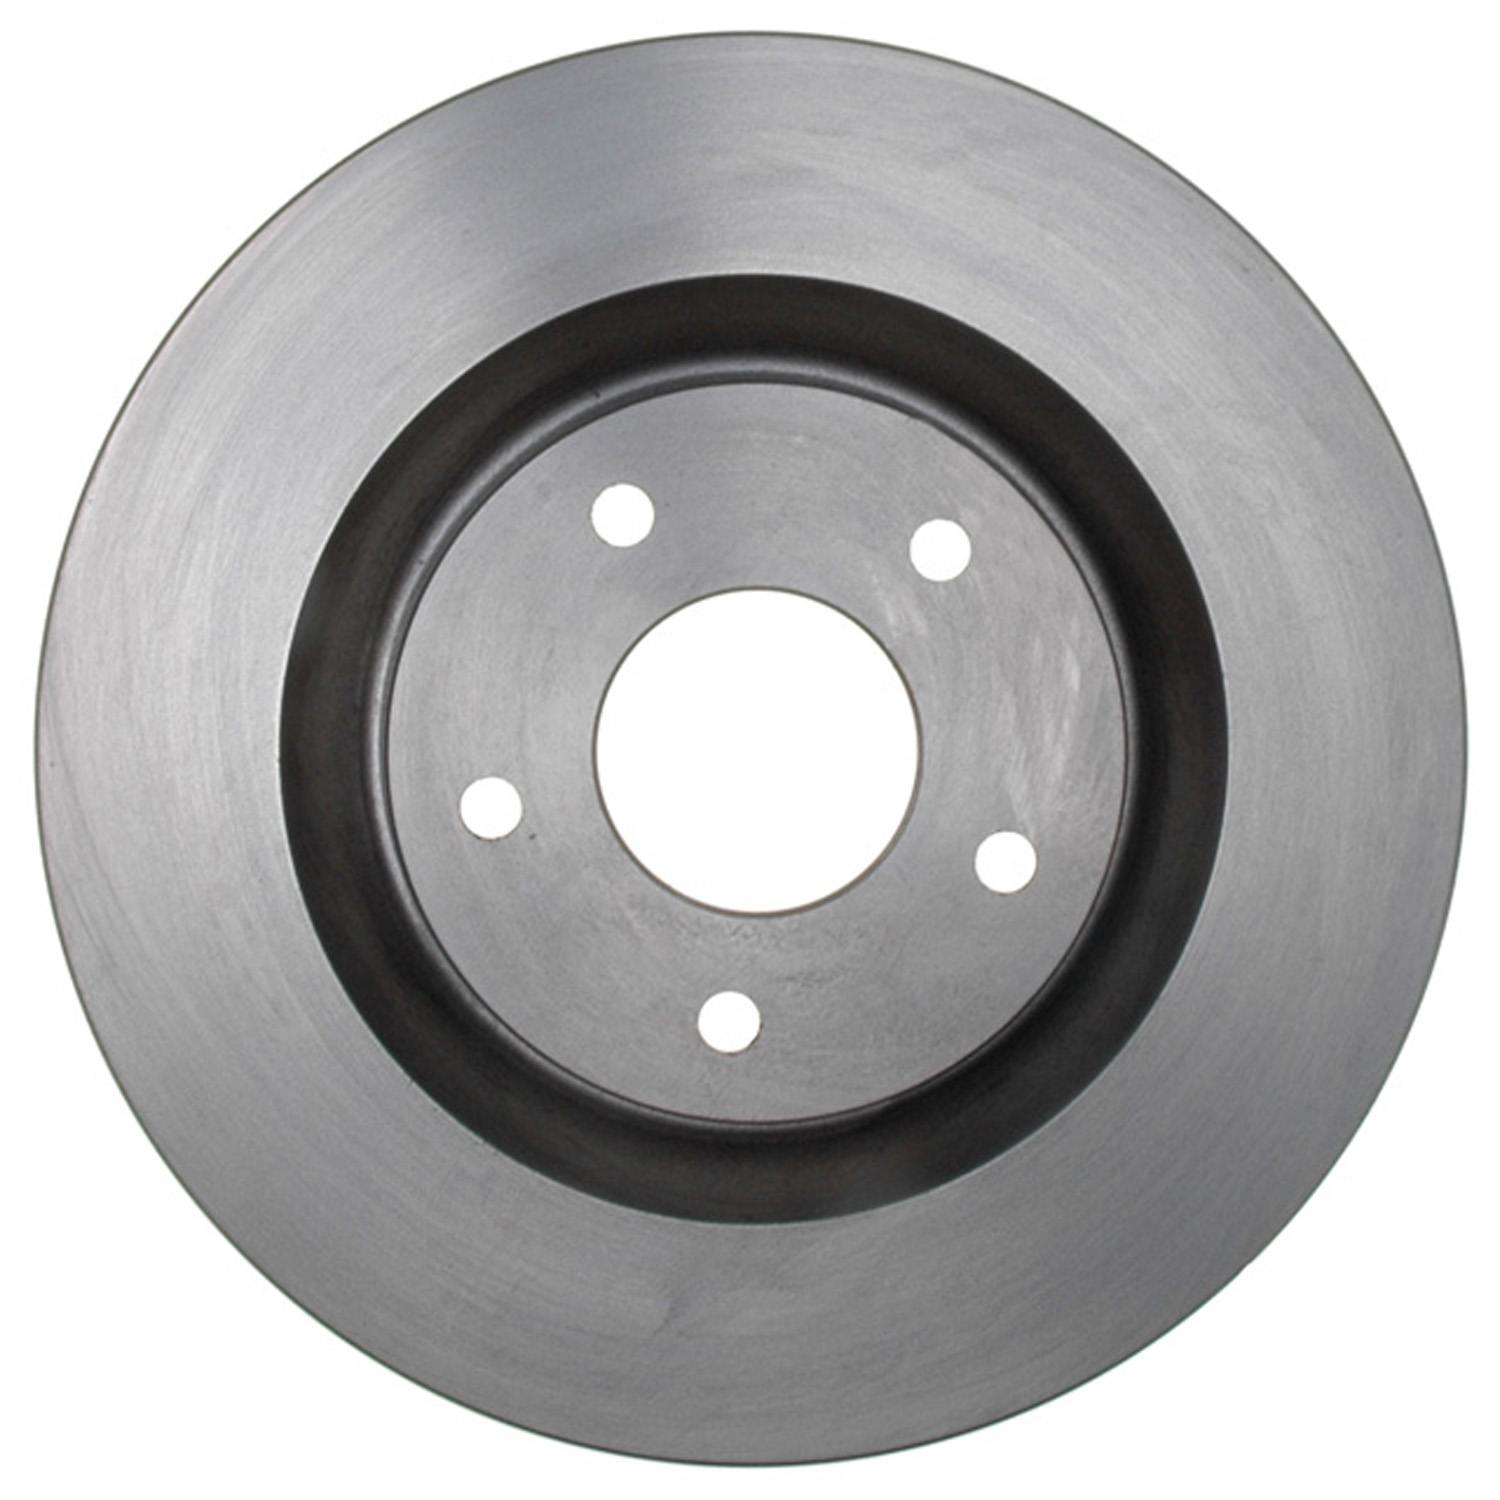 ACDELCO PROFESSIONAL BRAKES - Disc Brake Rotor (Front) - ADU 18A2308